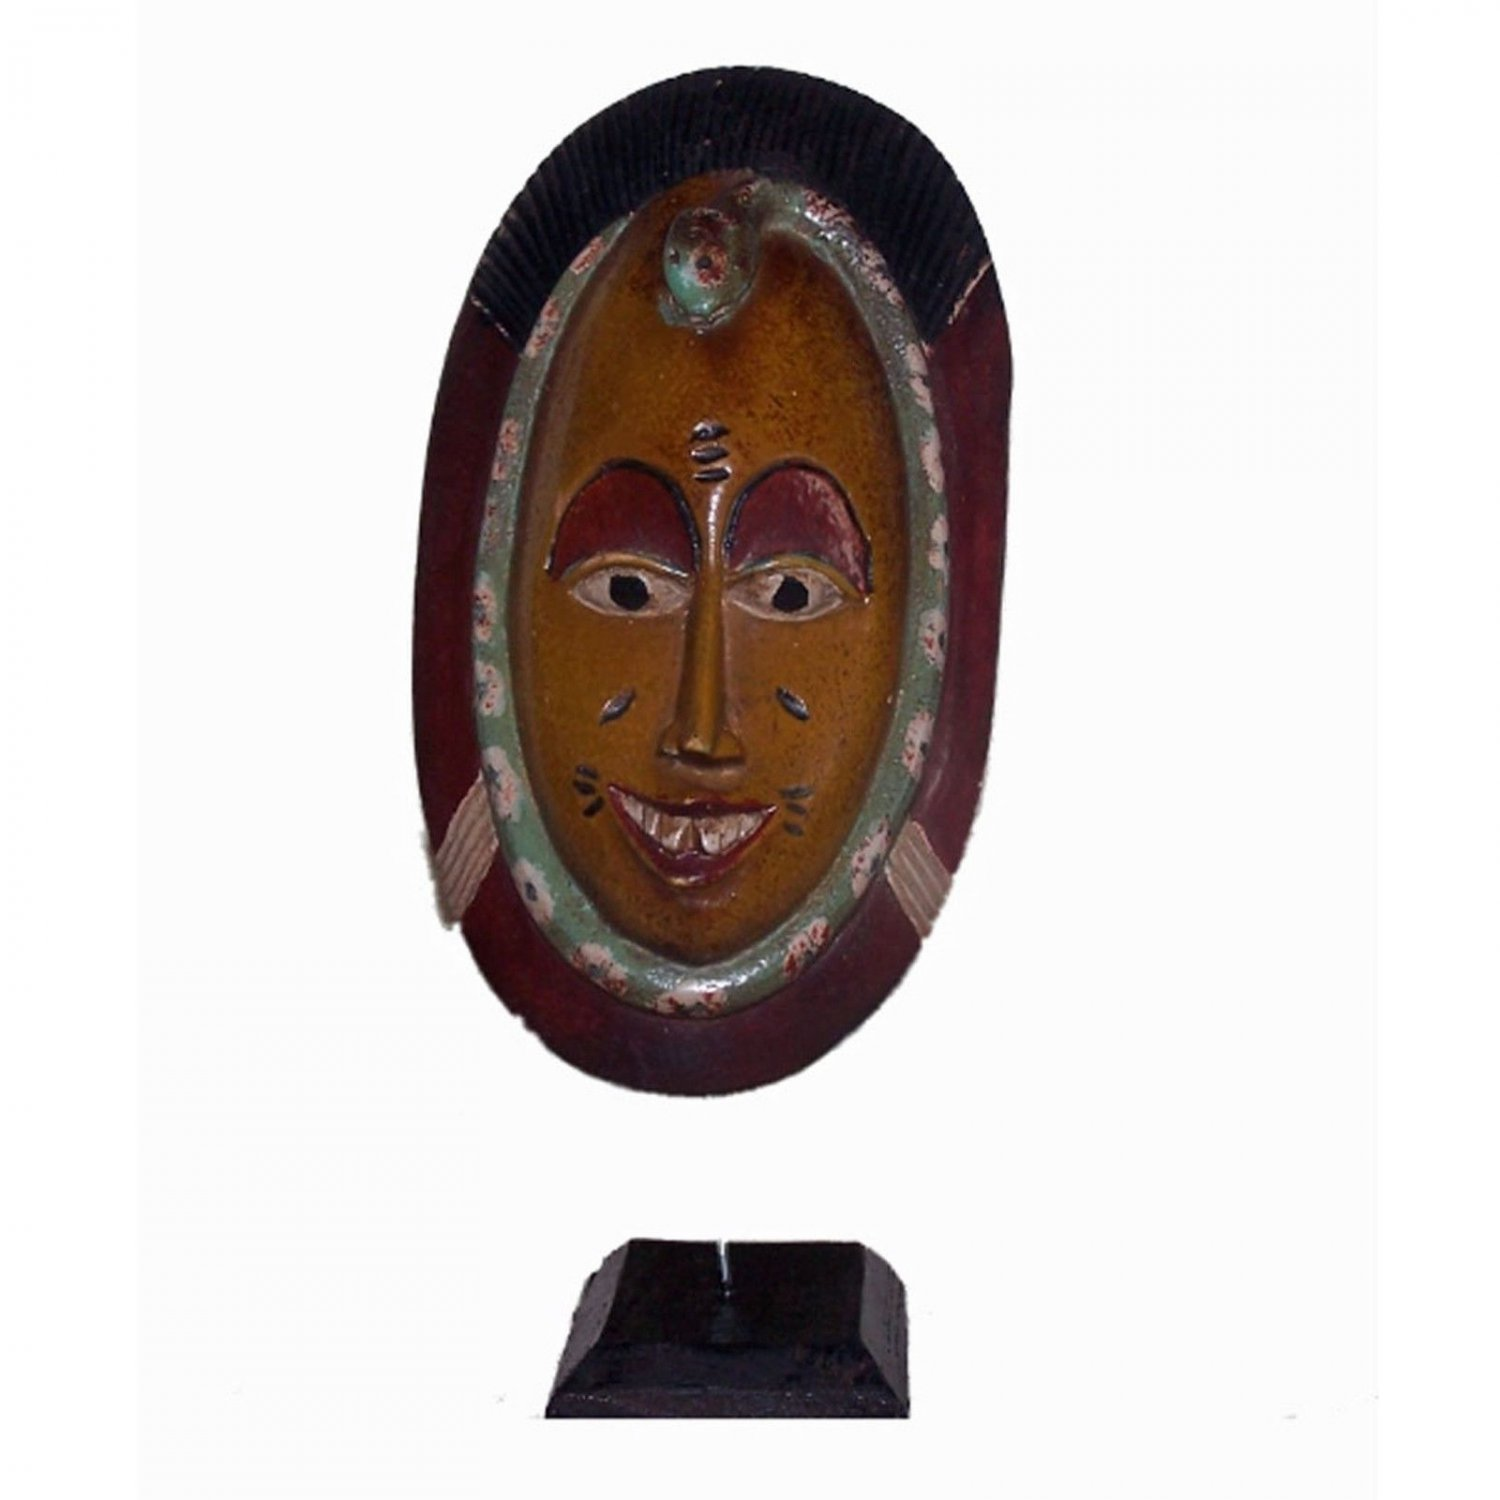 African Art Passport Mask on Stand Sculpture Carved Wood Statue Authentic Decor